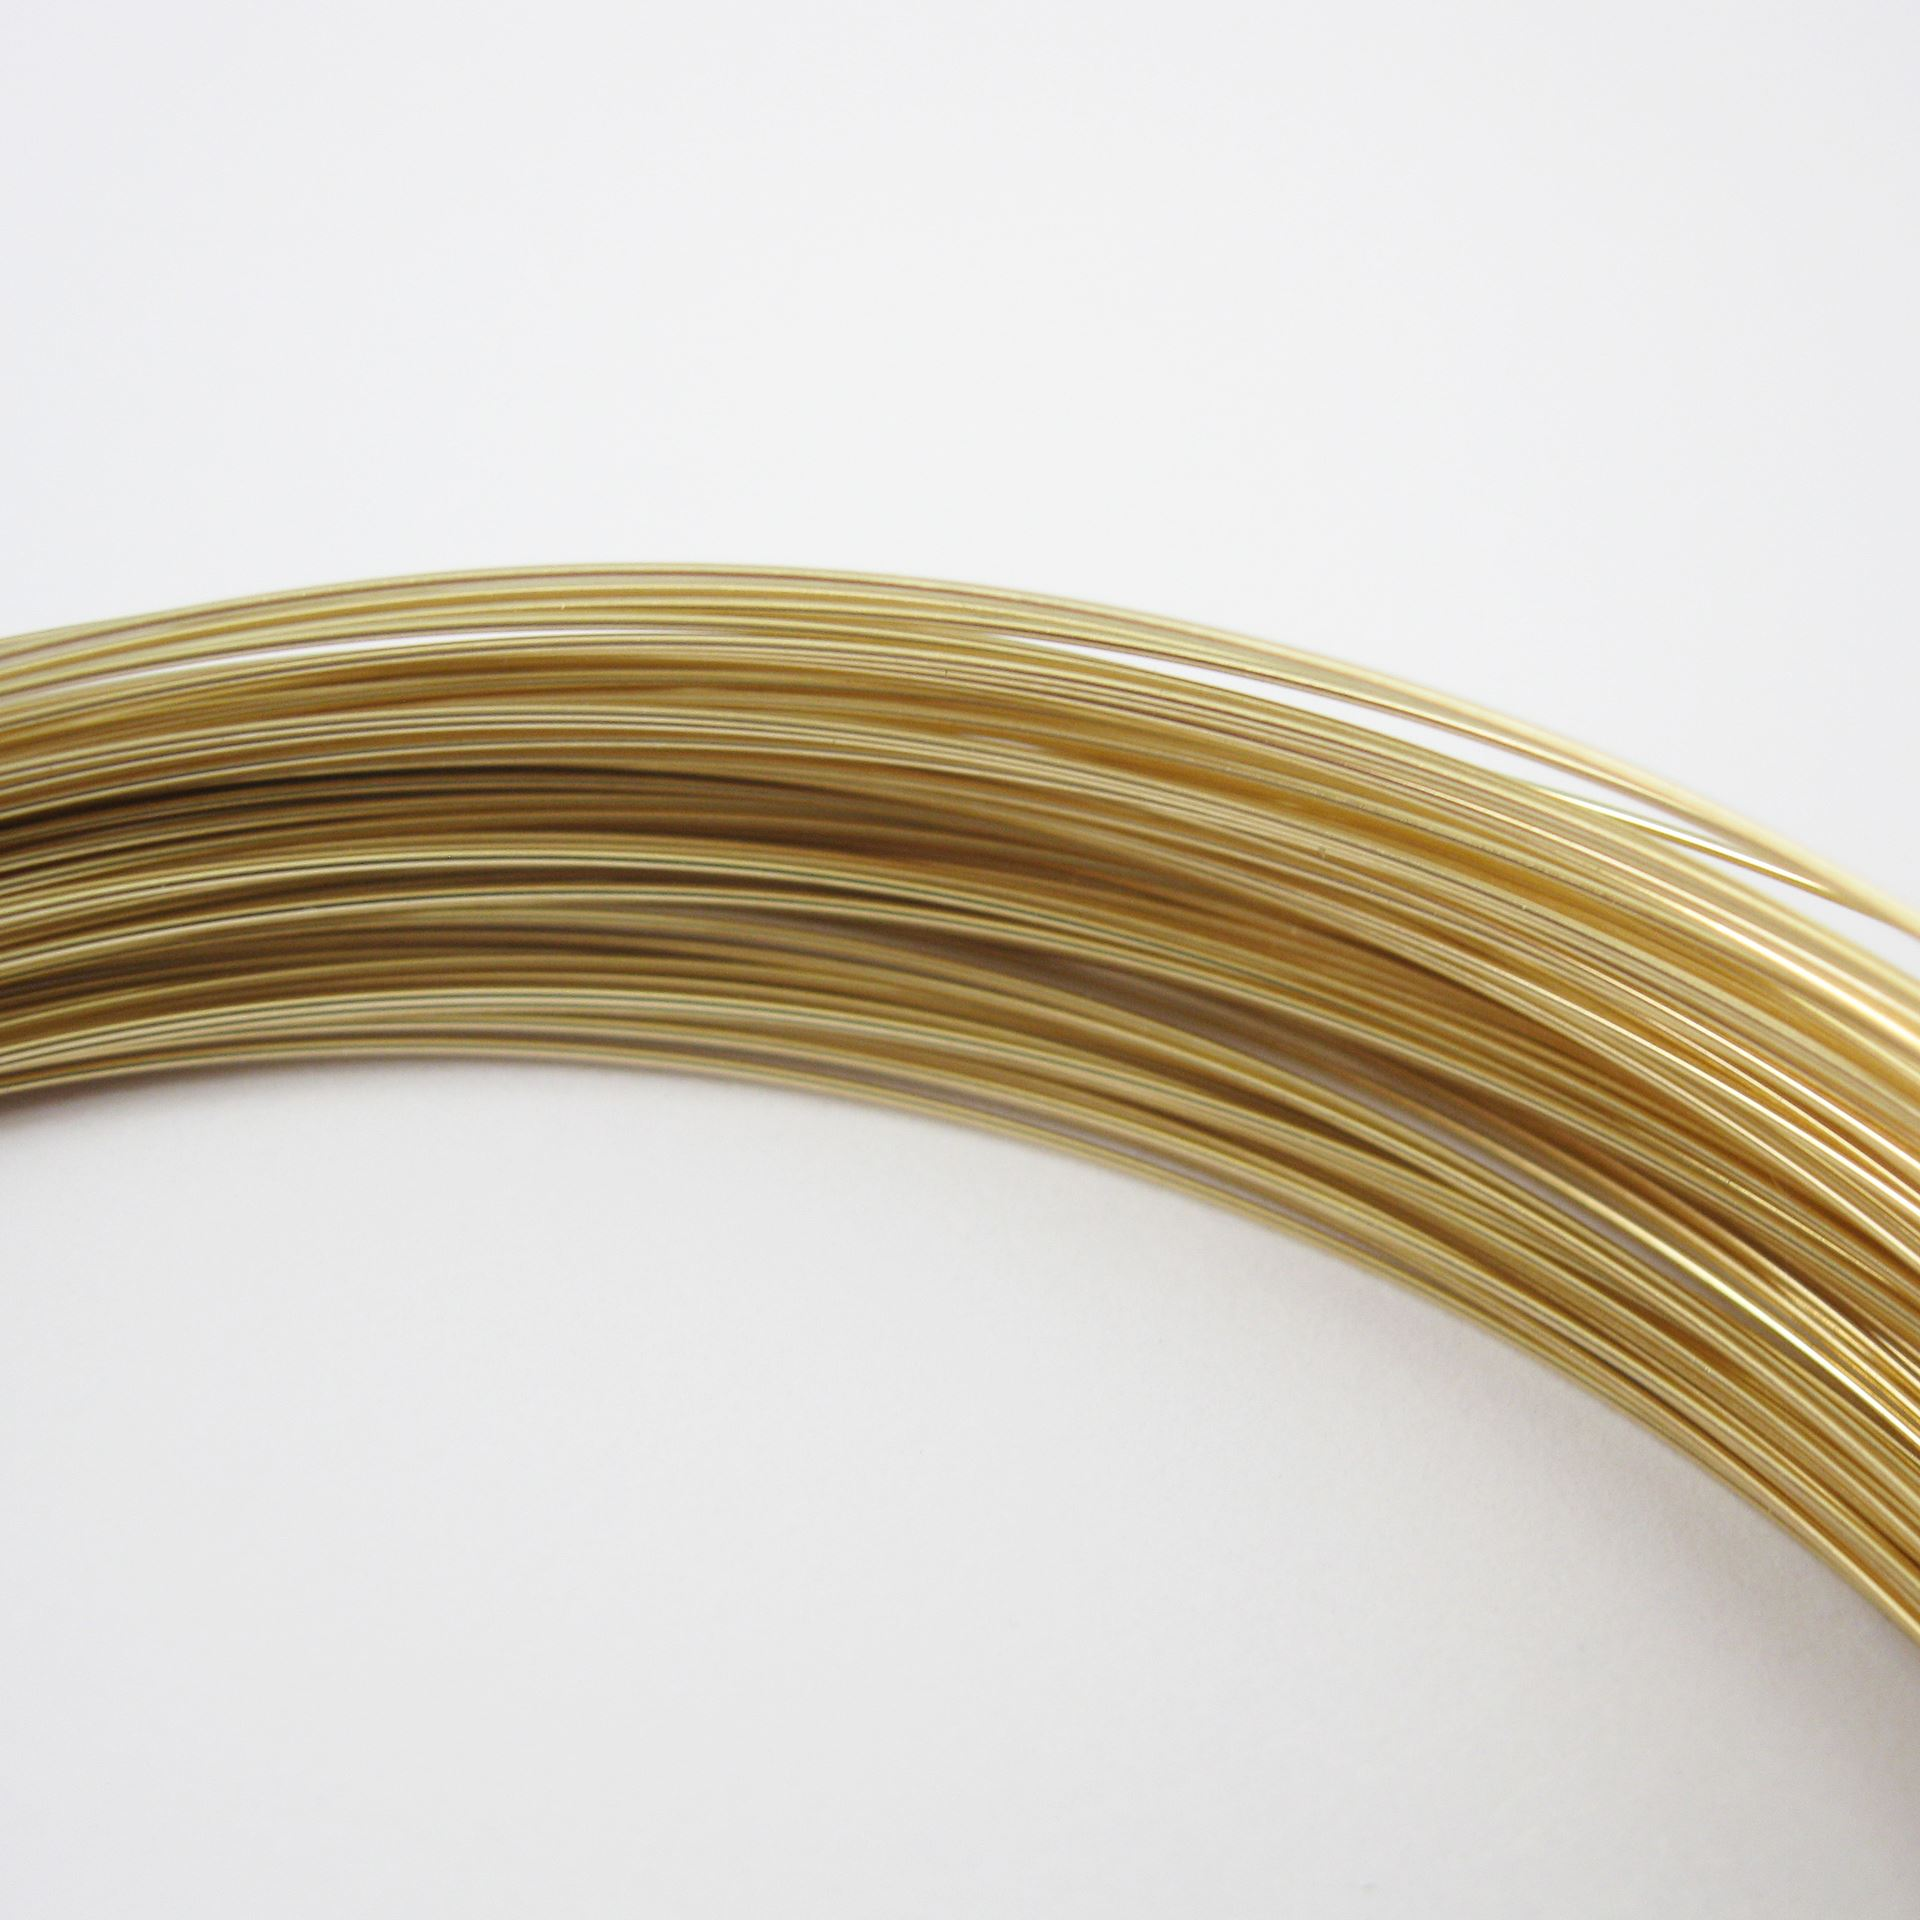 14K Gold Filled Wire - 26 ga -0.41mm (sold per 6 feet)